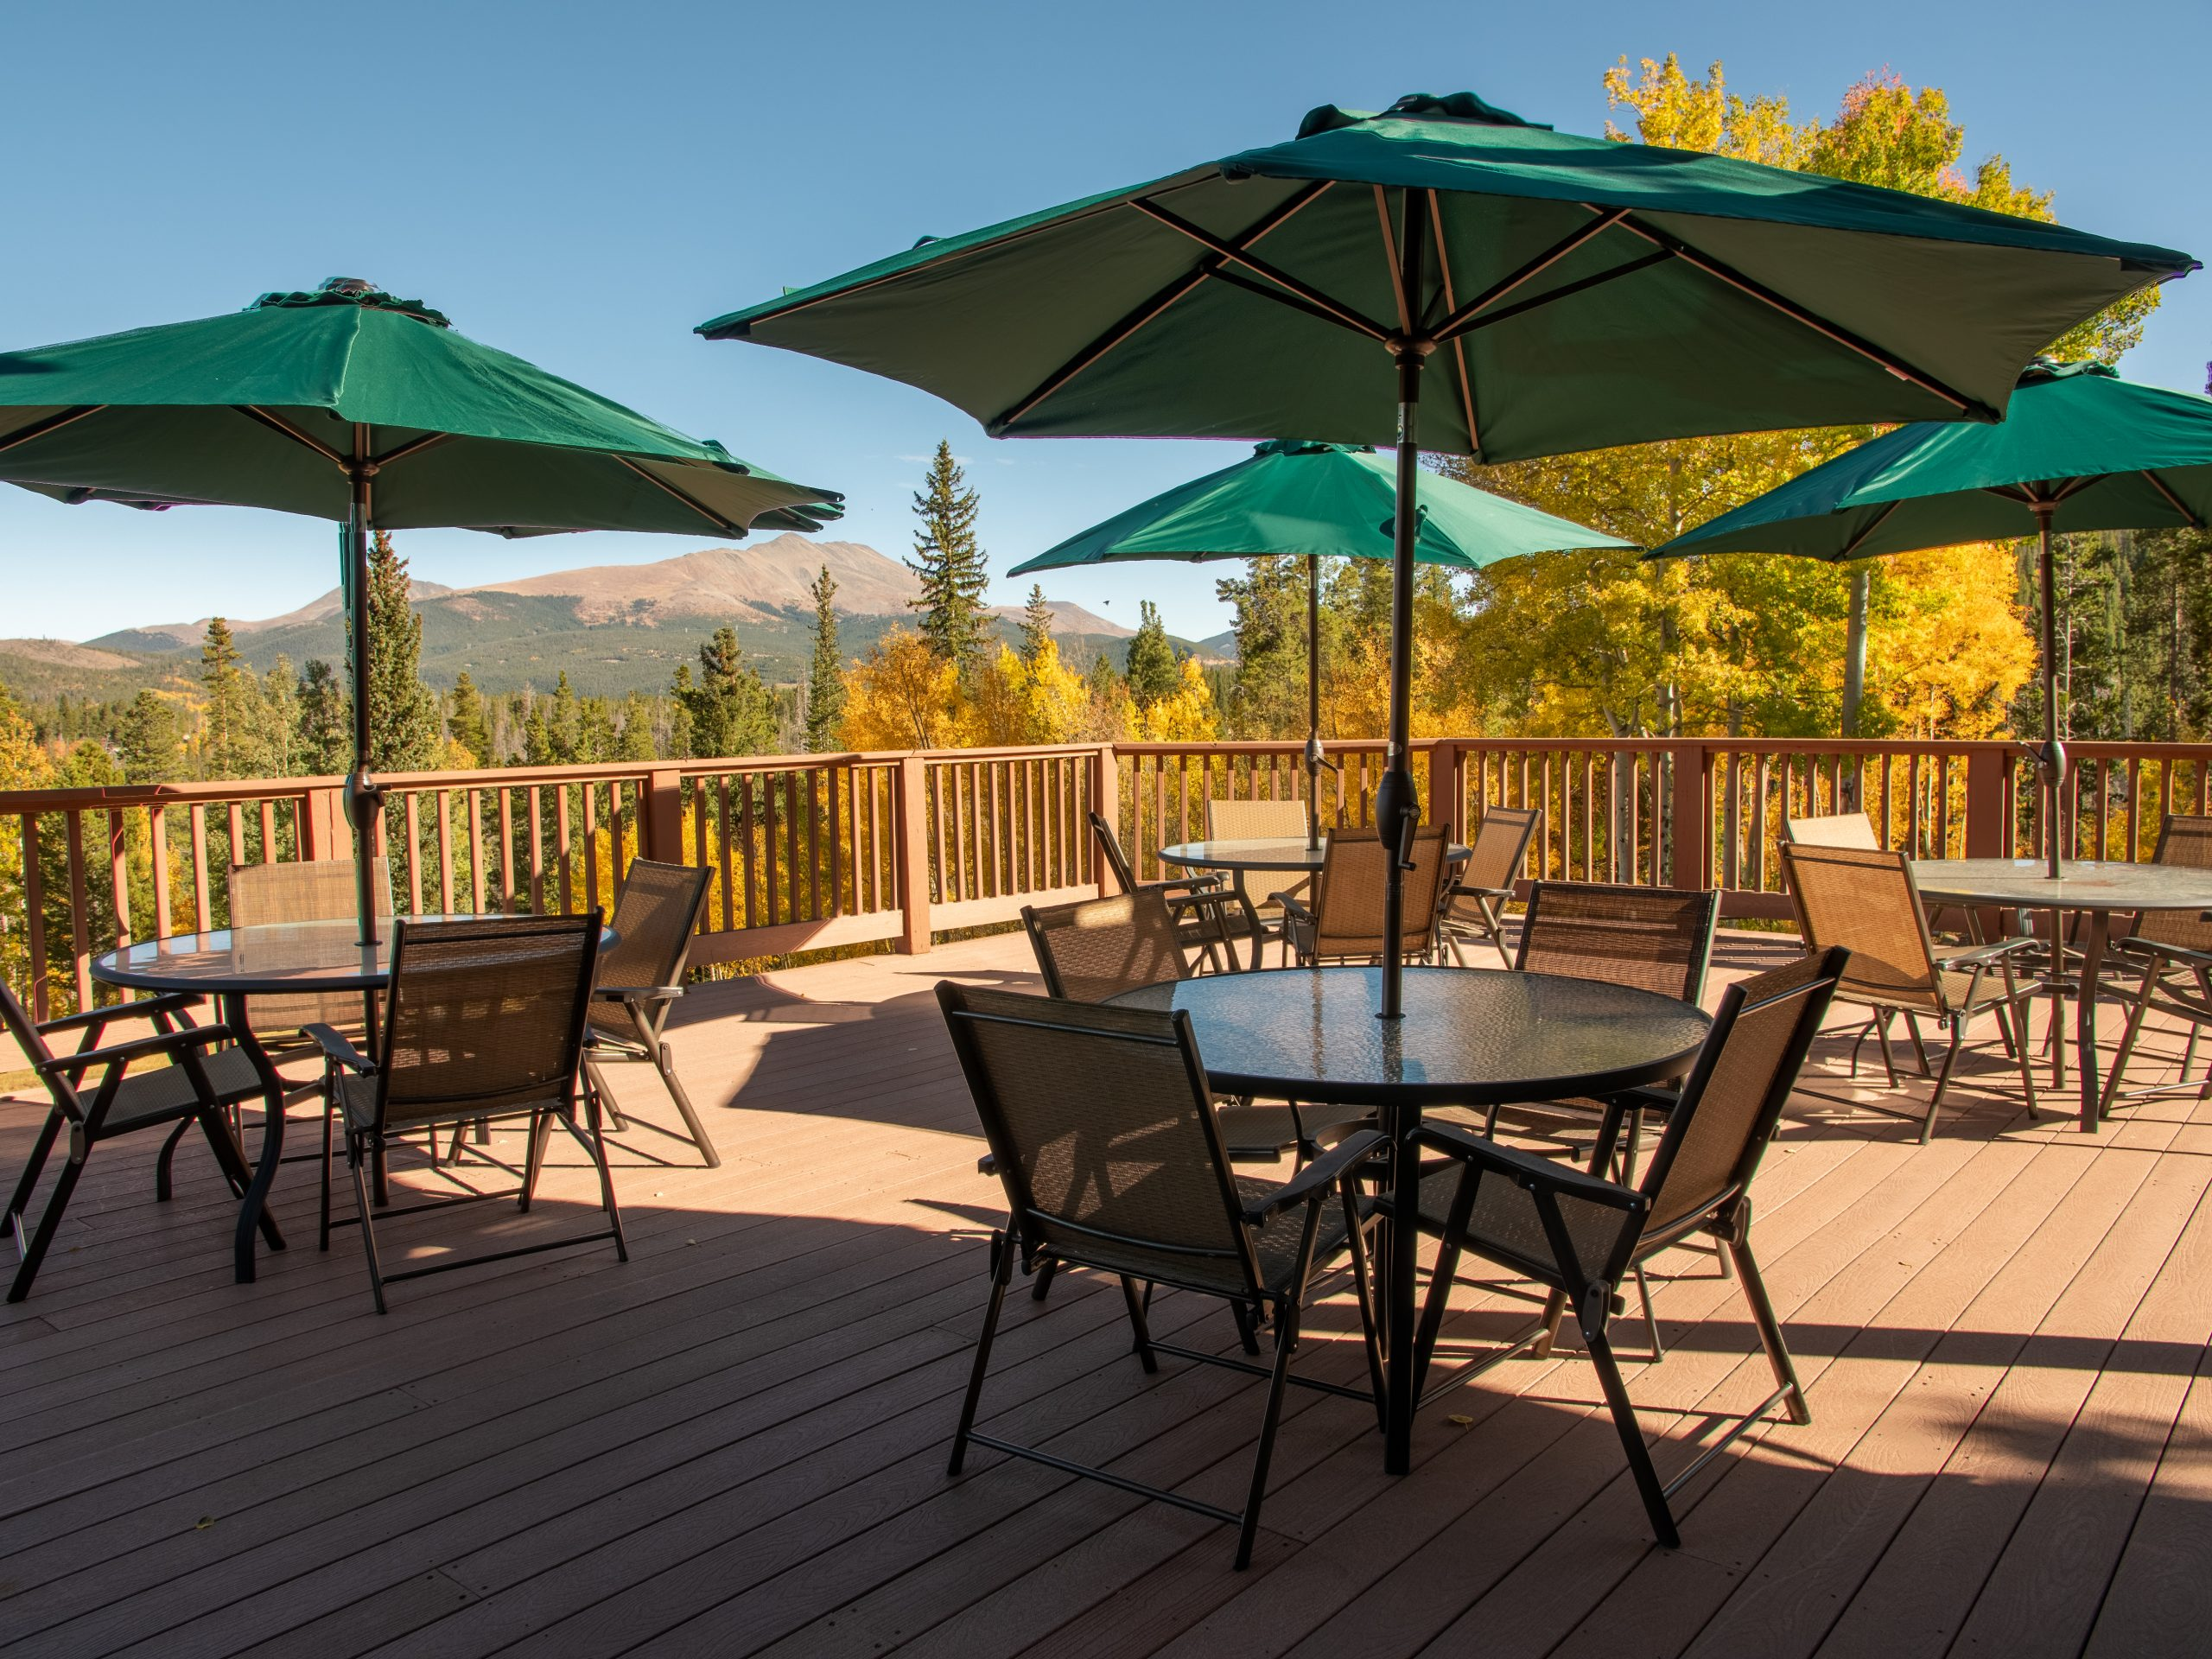 Fall panoramic views from a deck on Peak 7 in Breckenridge